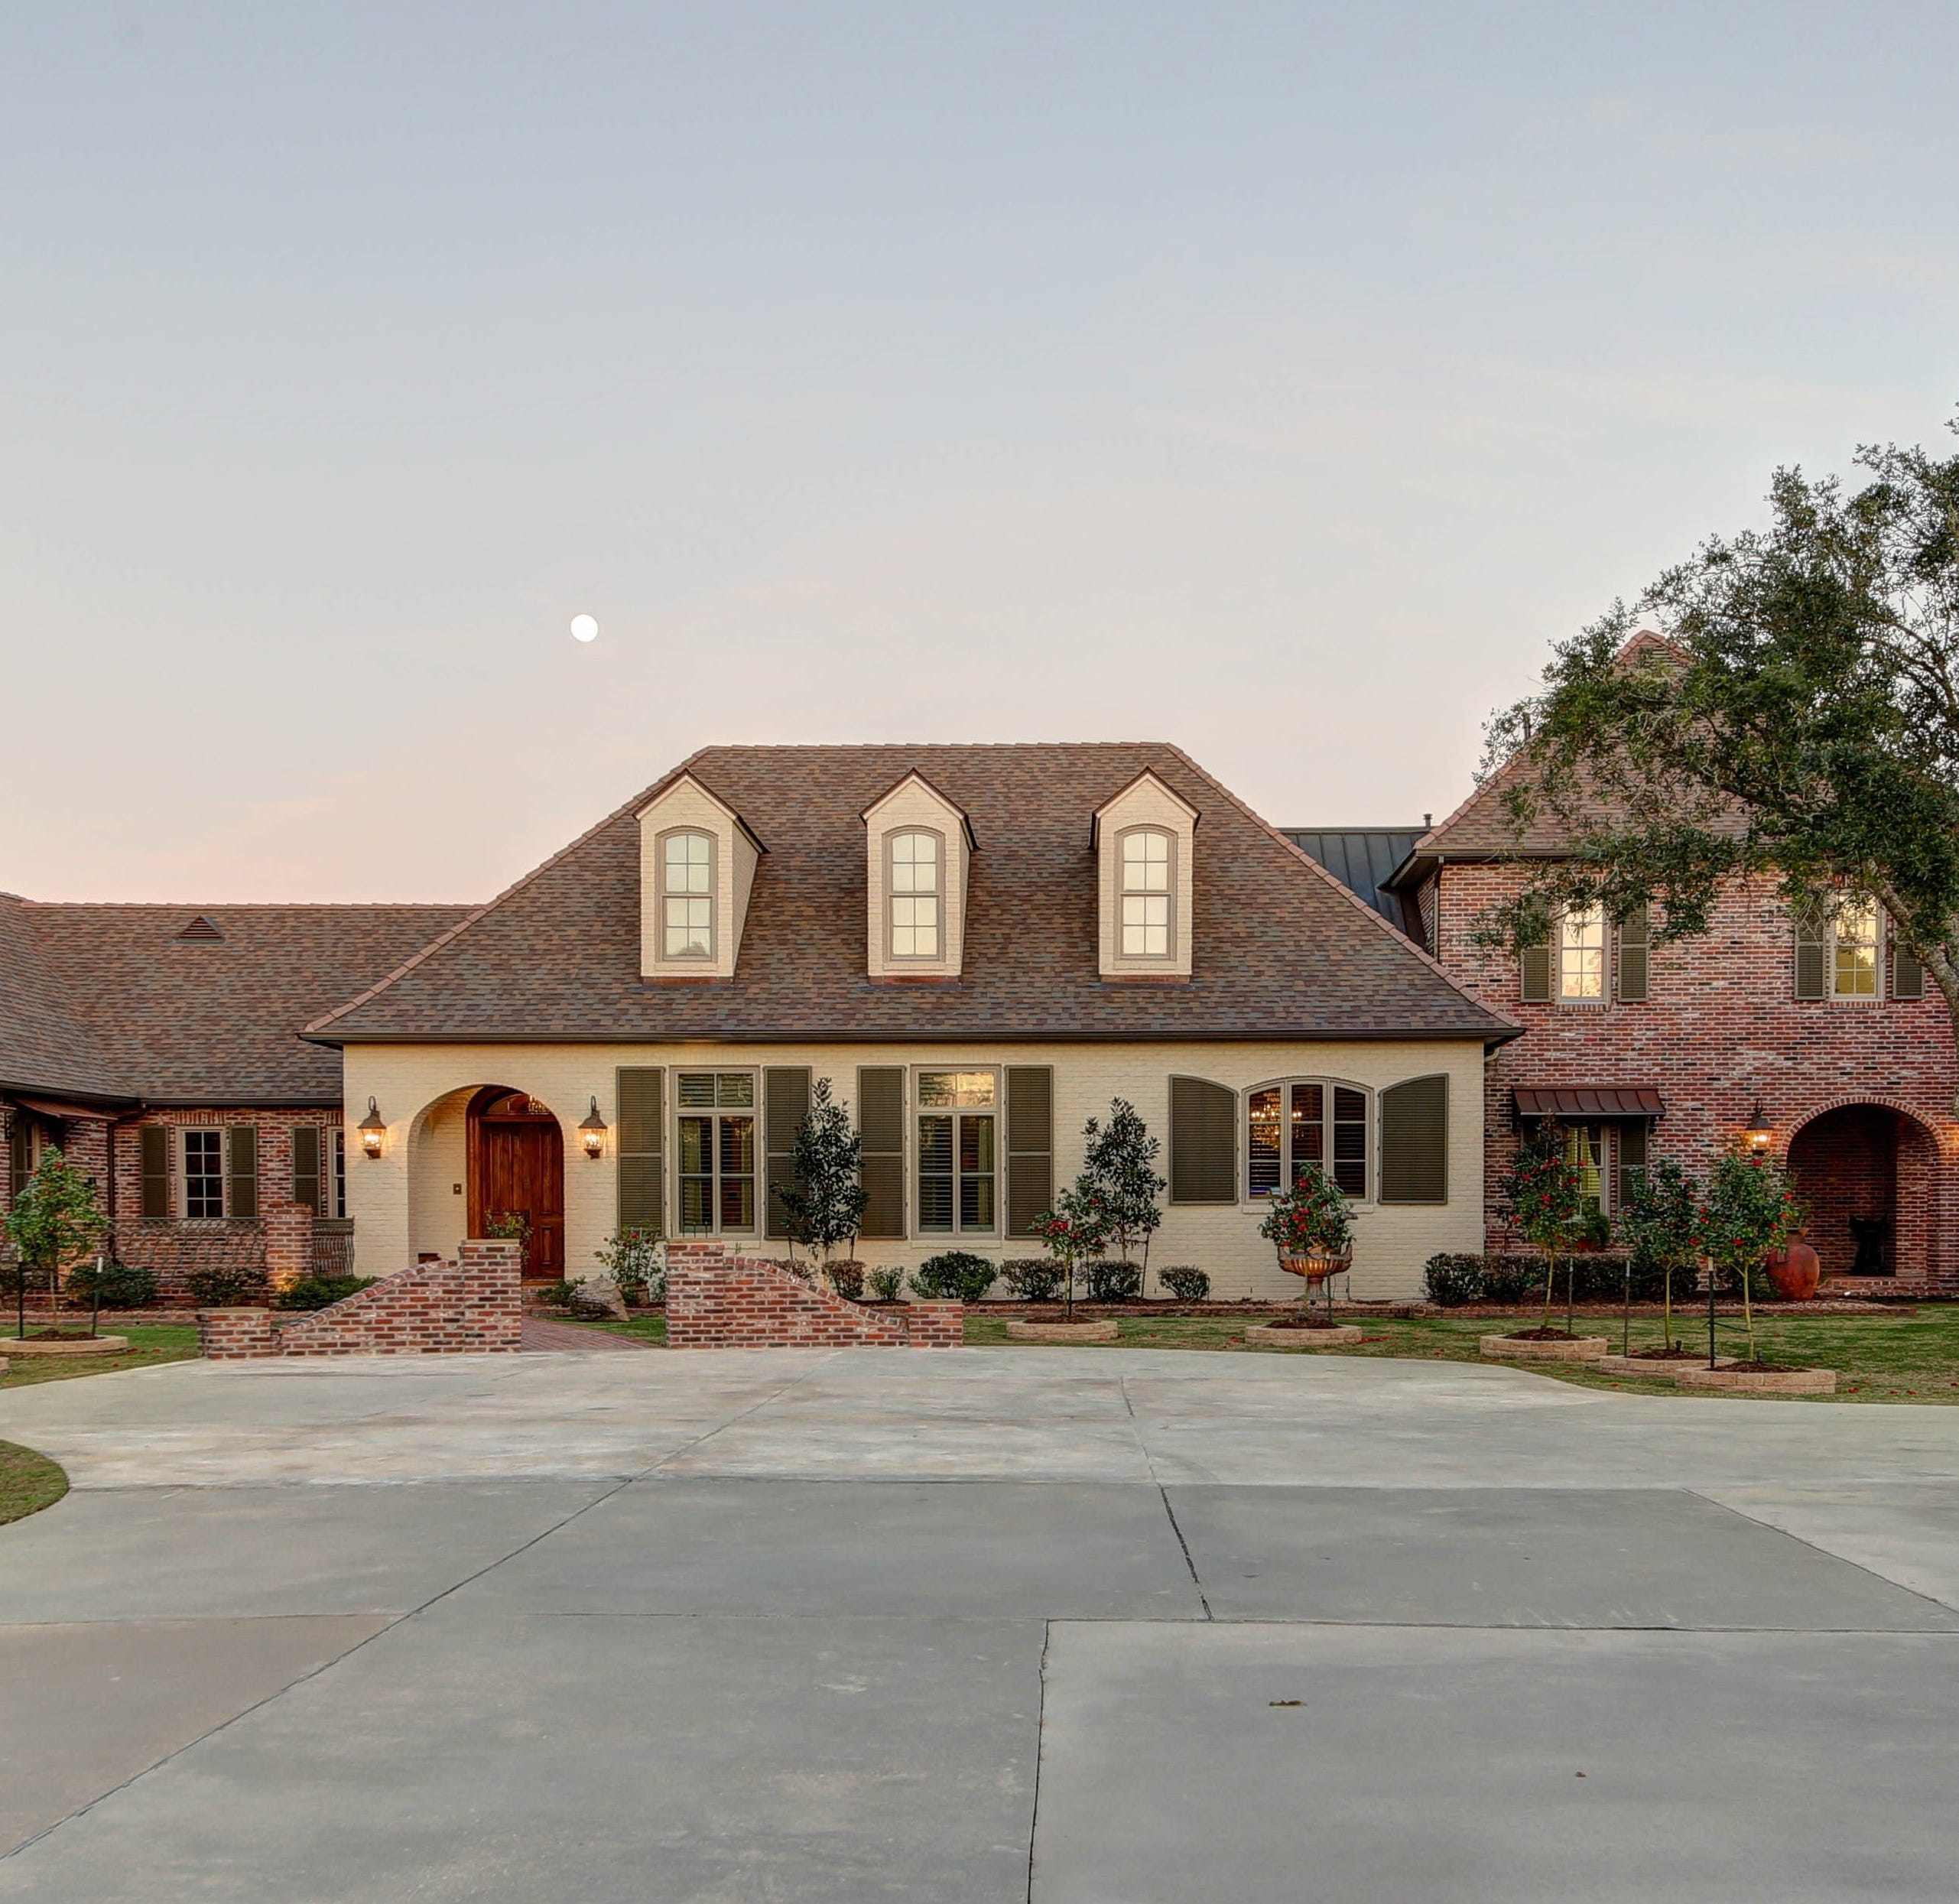 Got $4M? See this totally renovated mansion in Youngsville